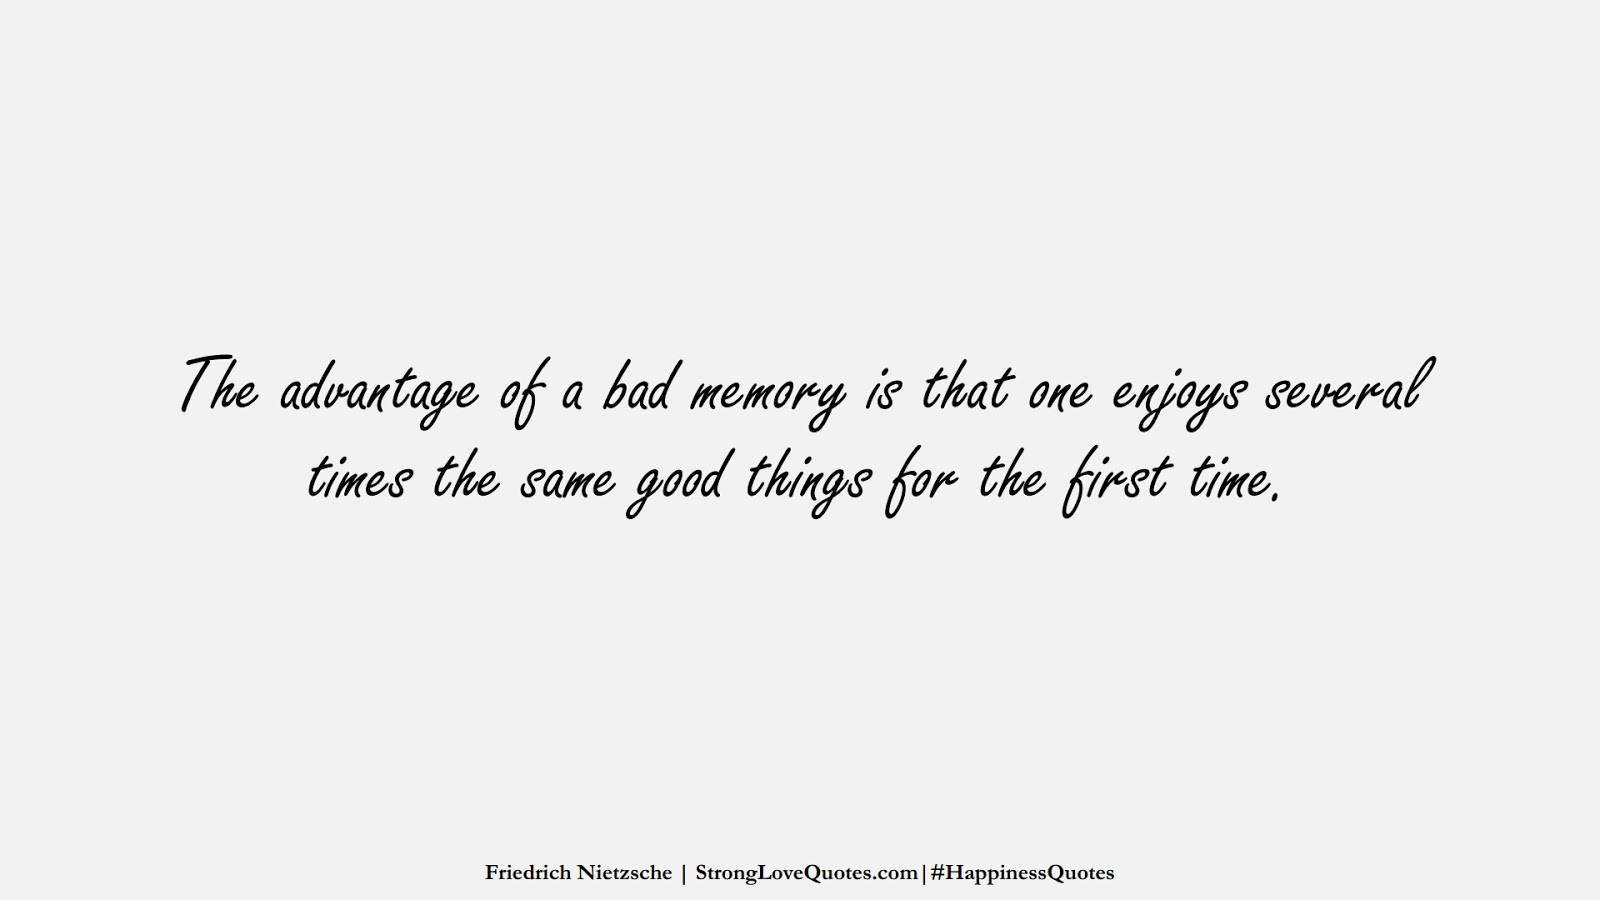 The advantage of a bad memory is that one enjoys several times the same good things for the first time. (Friedrich Nietzsche);  #HappinessQuotes